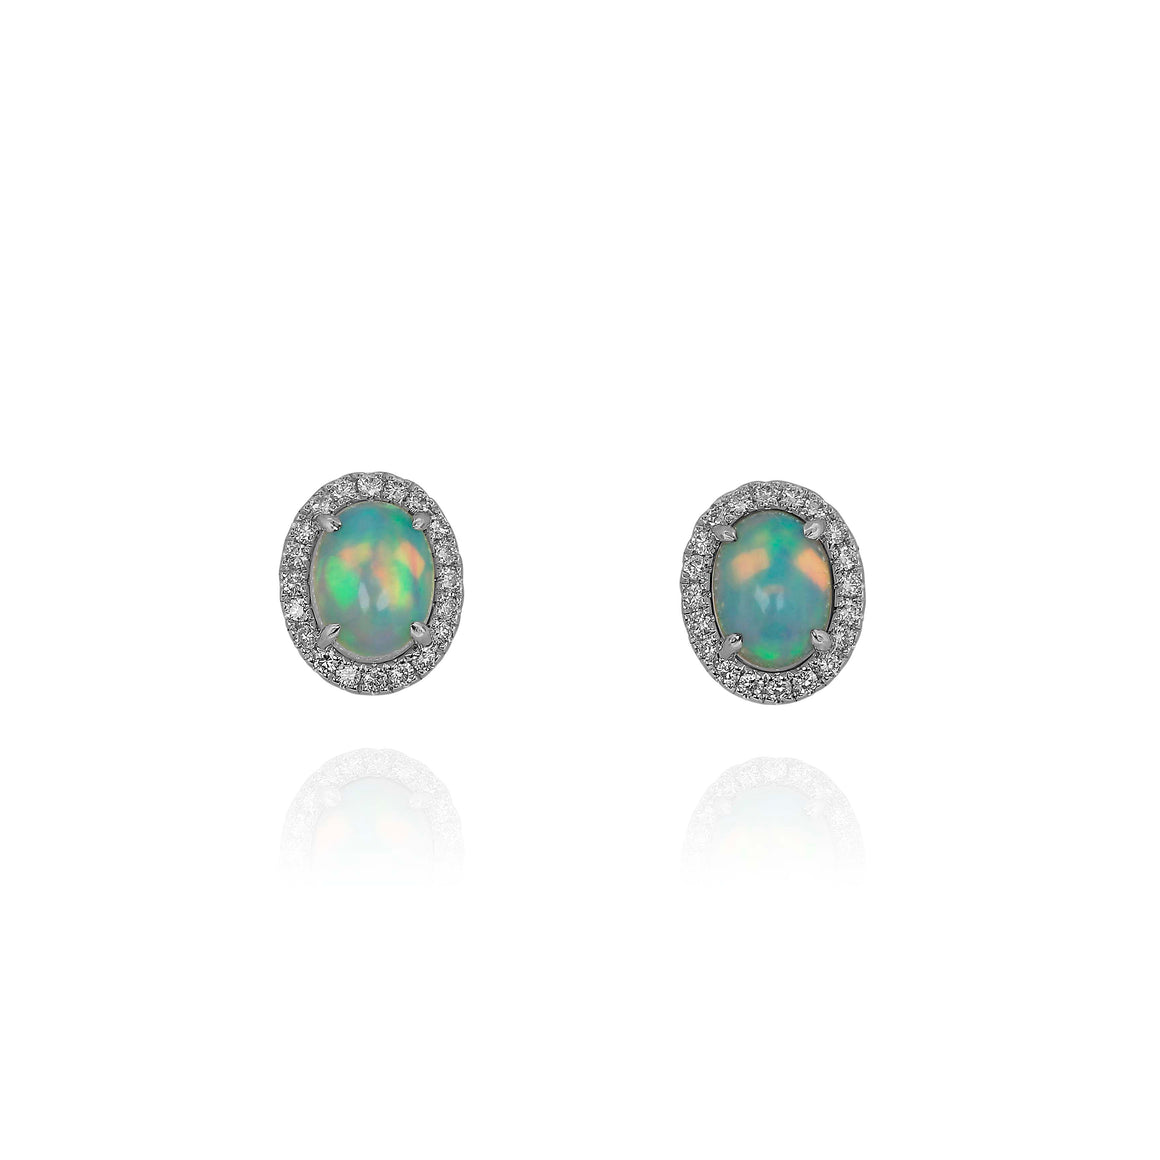 Yael 18k White Gold Opal and Diamond Stud Earrings